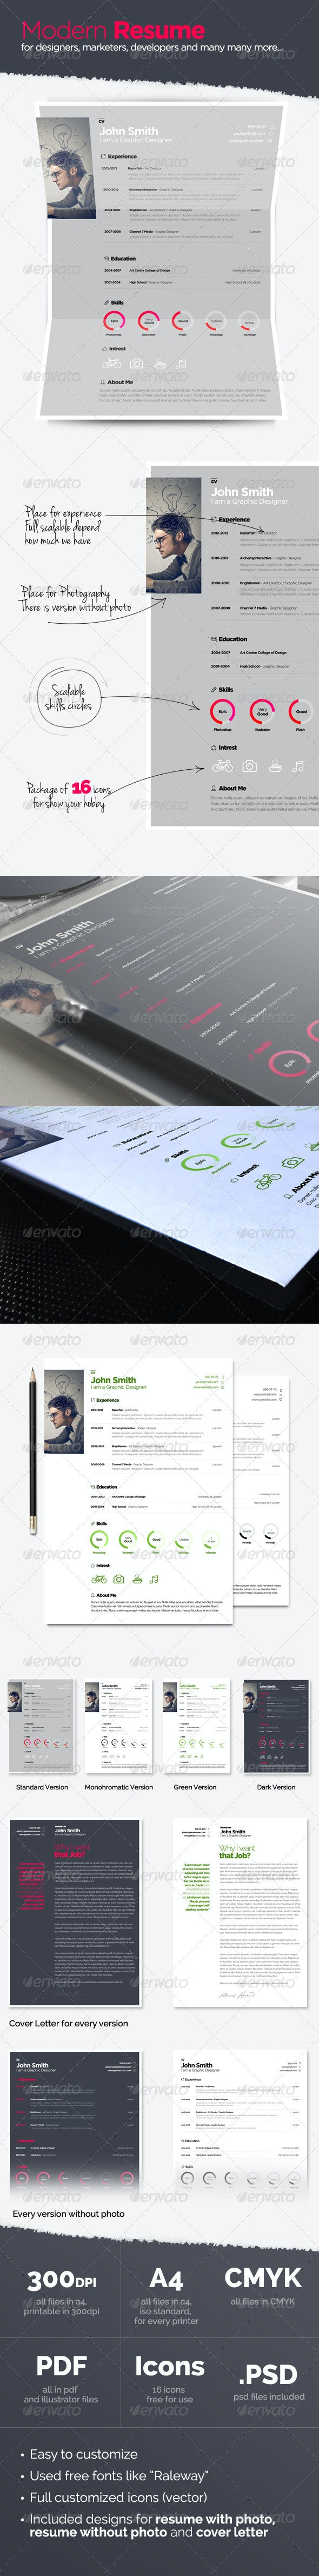 Modern Fresh Resume and Cover Letter - Resumes Stationery